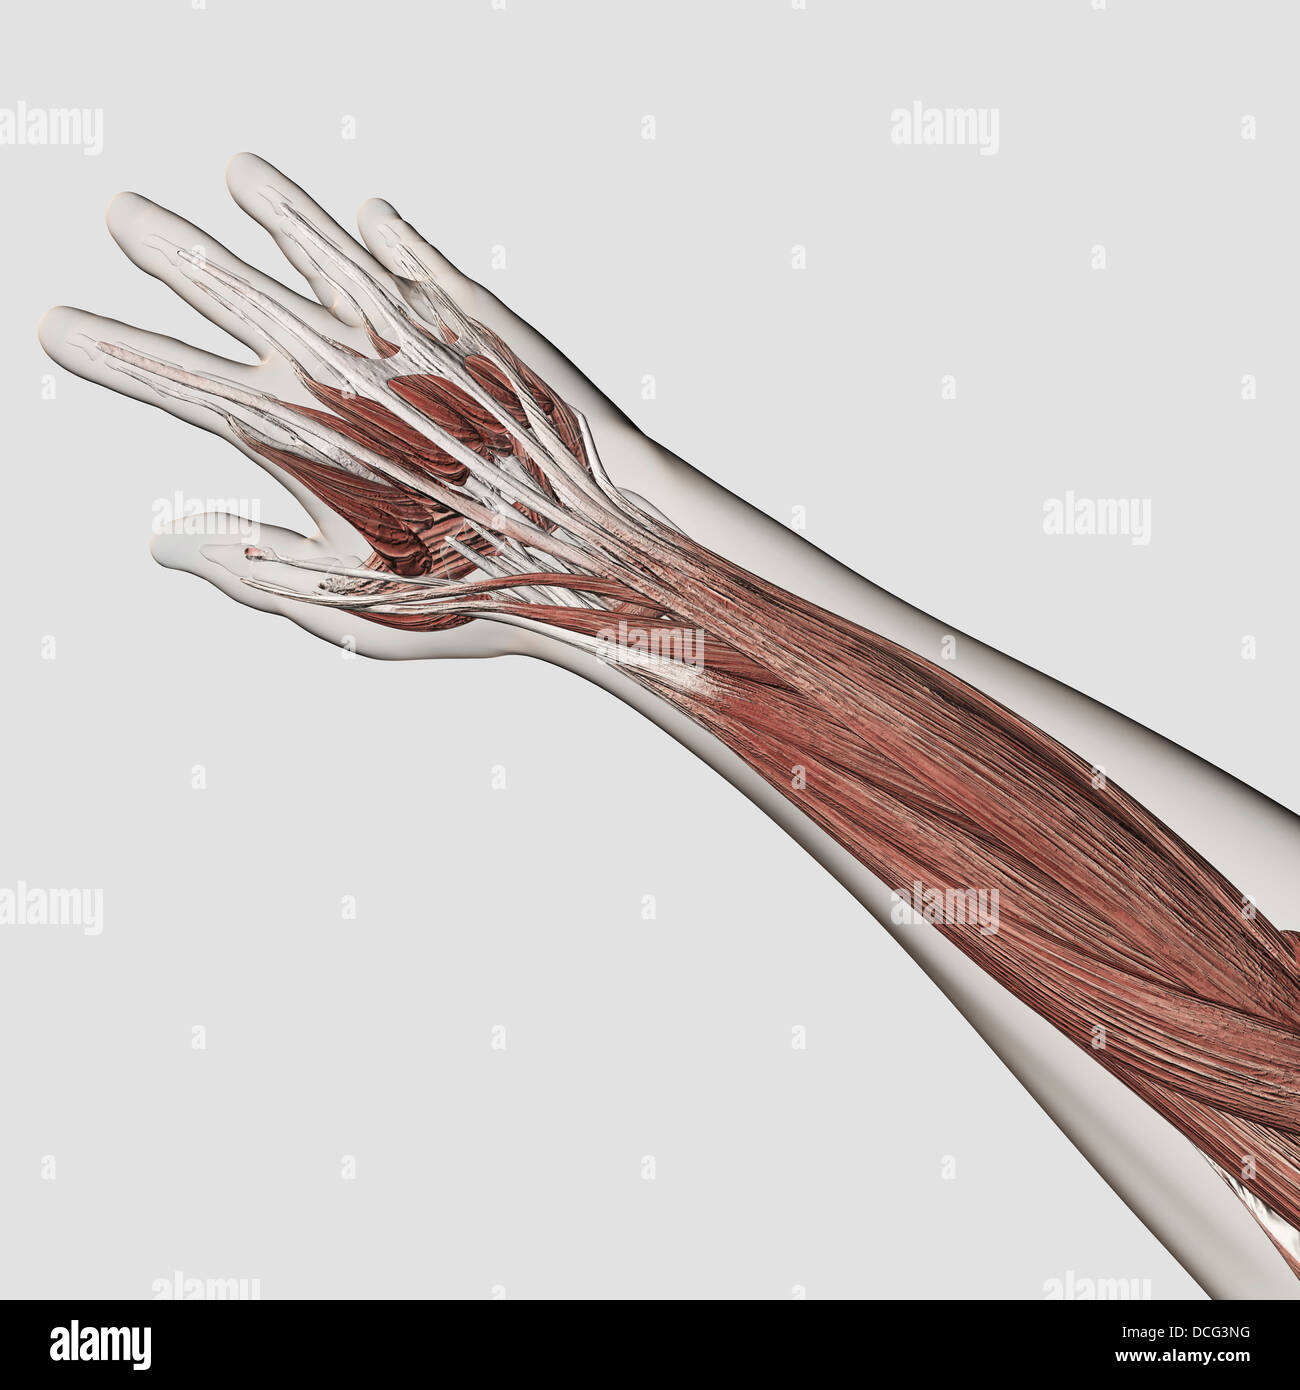 Brachioradialis Muscle Stock Photos Brachioradialis Muscle Stock